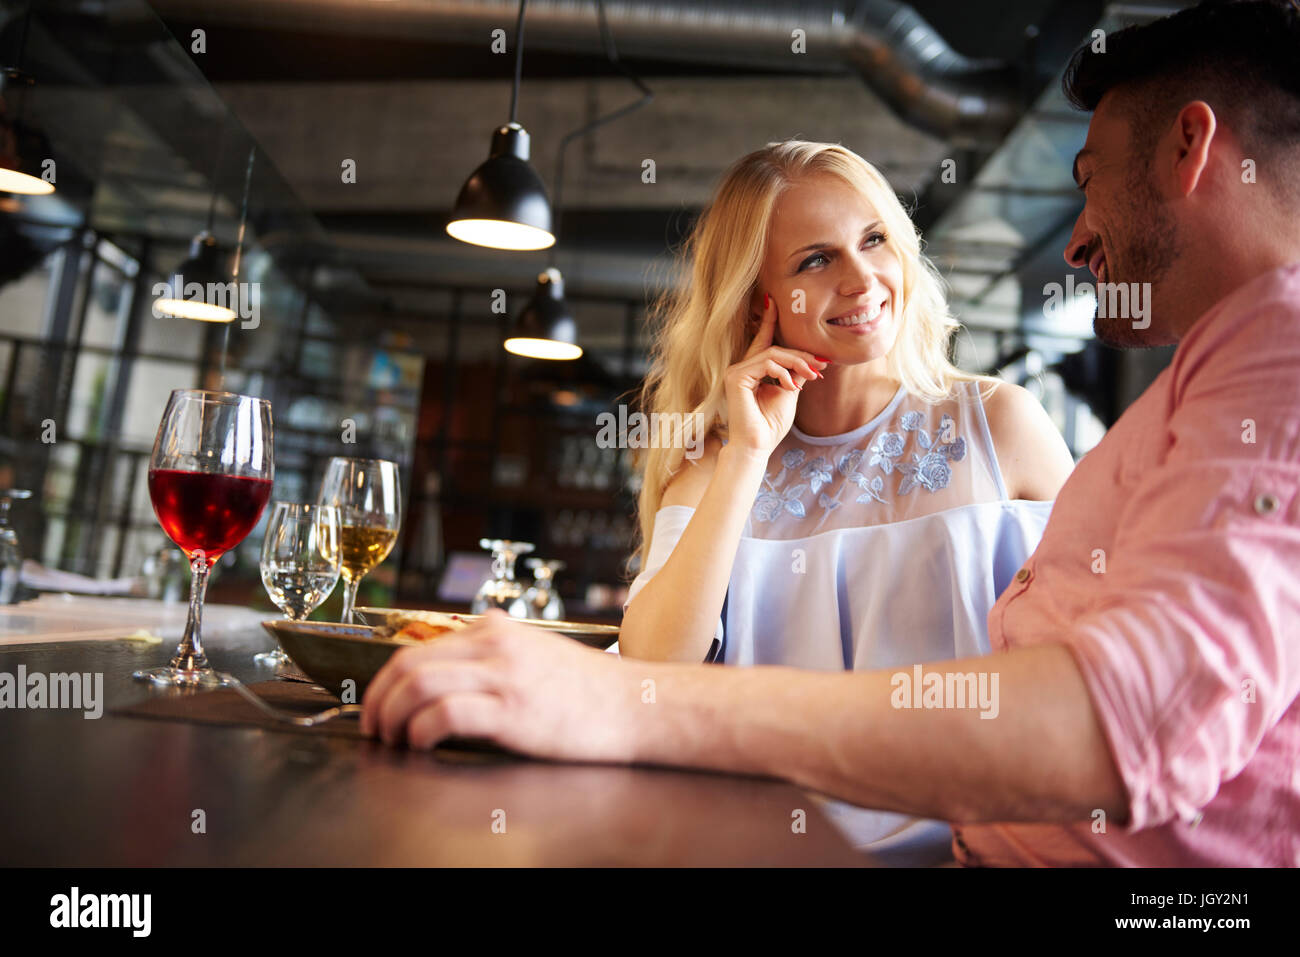 Couple chatting at restaurant table - Stock Image